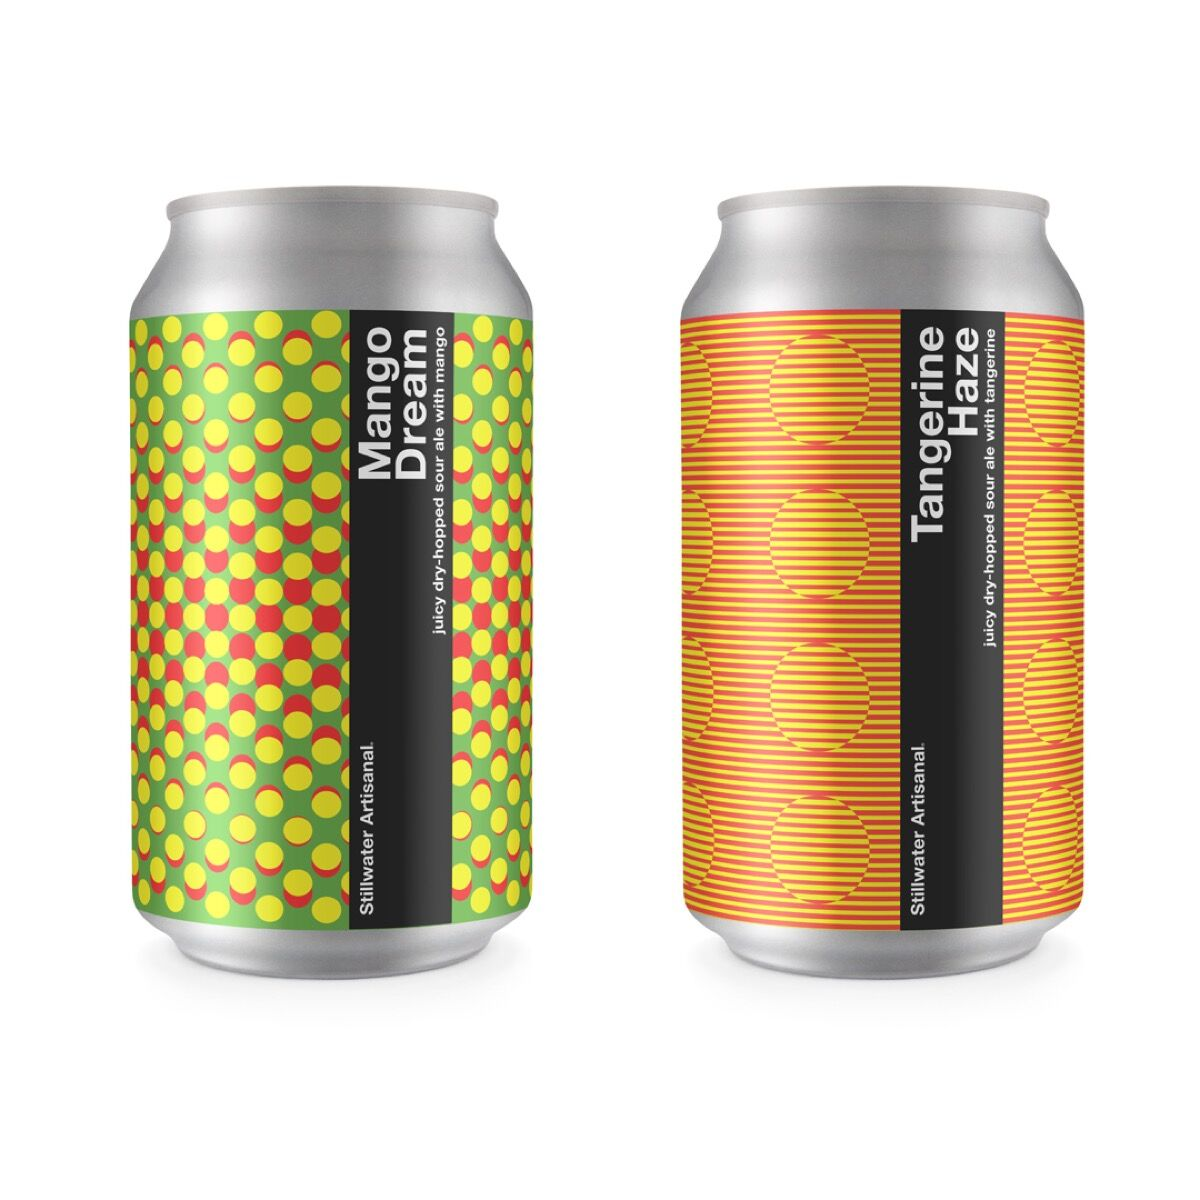 Designed by Mike Van Hall for Stillwater Artisanal. Courtesy of Stillwater Artisanal.